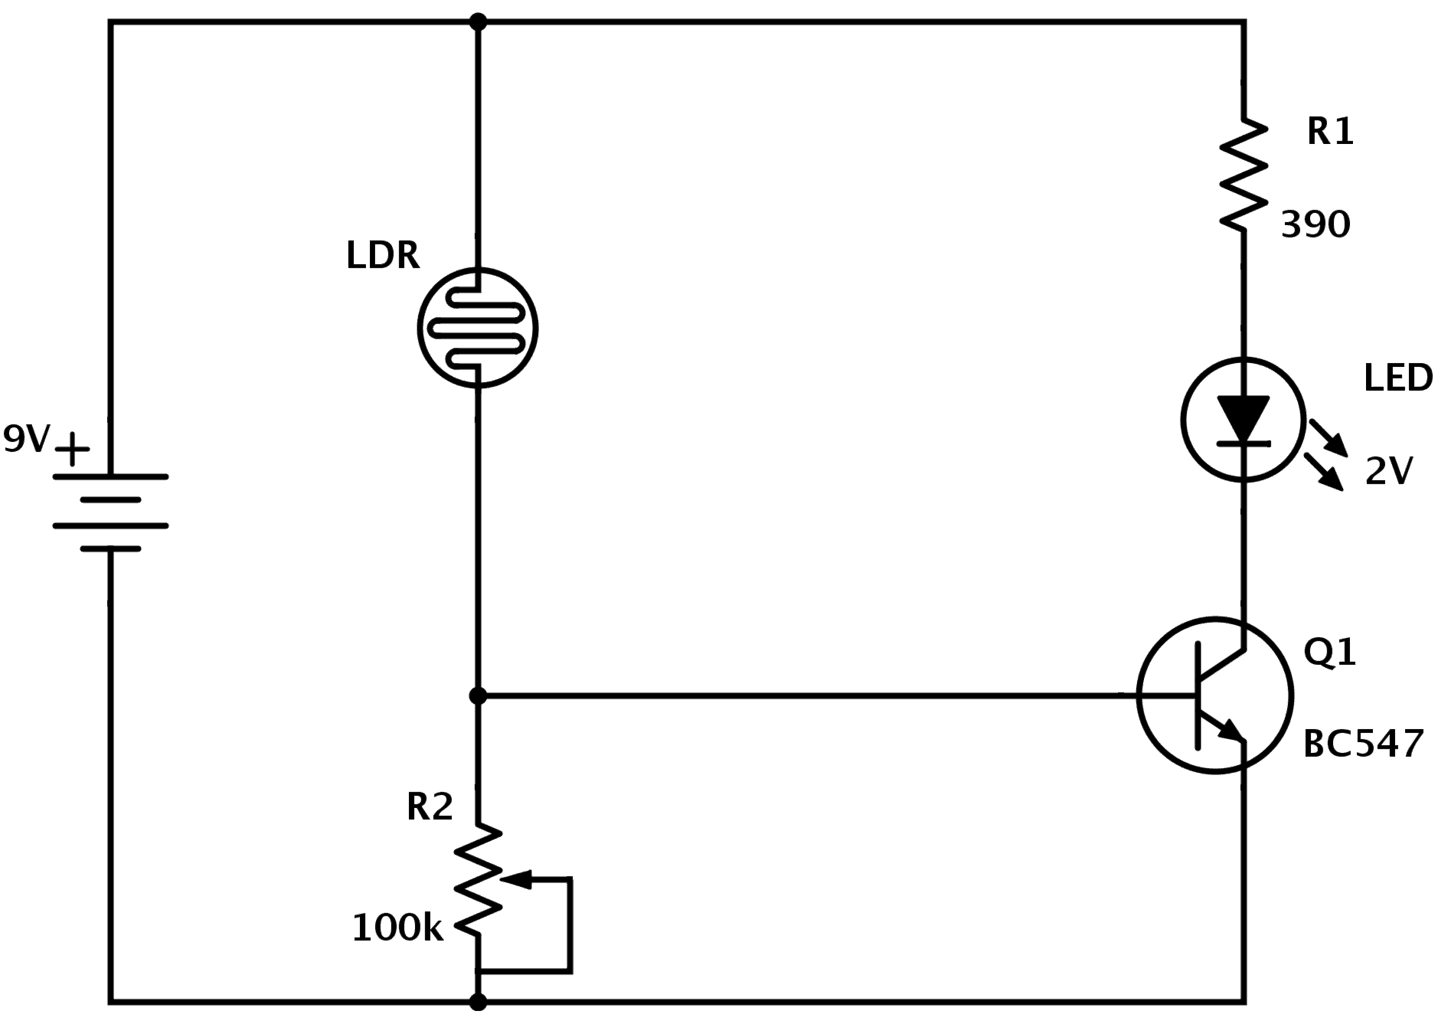 LDR circuit improved circuit diagram how to read and understand any schematic simple circuit diagram at bakdesigns.co